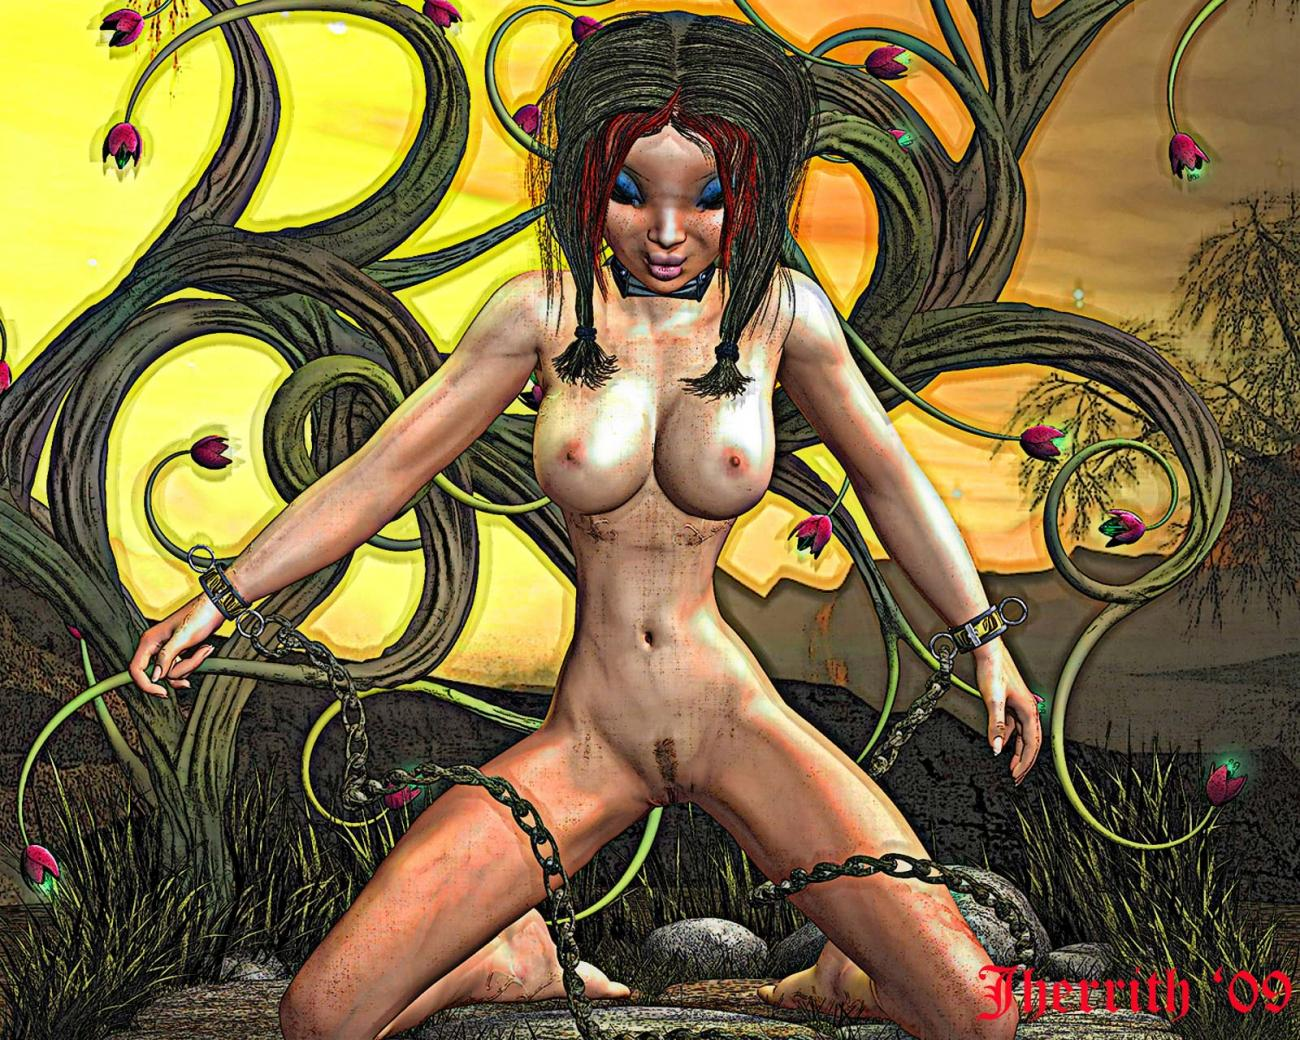 Enchained (nudity)